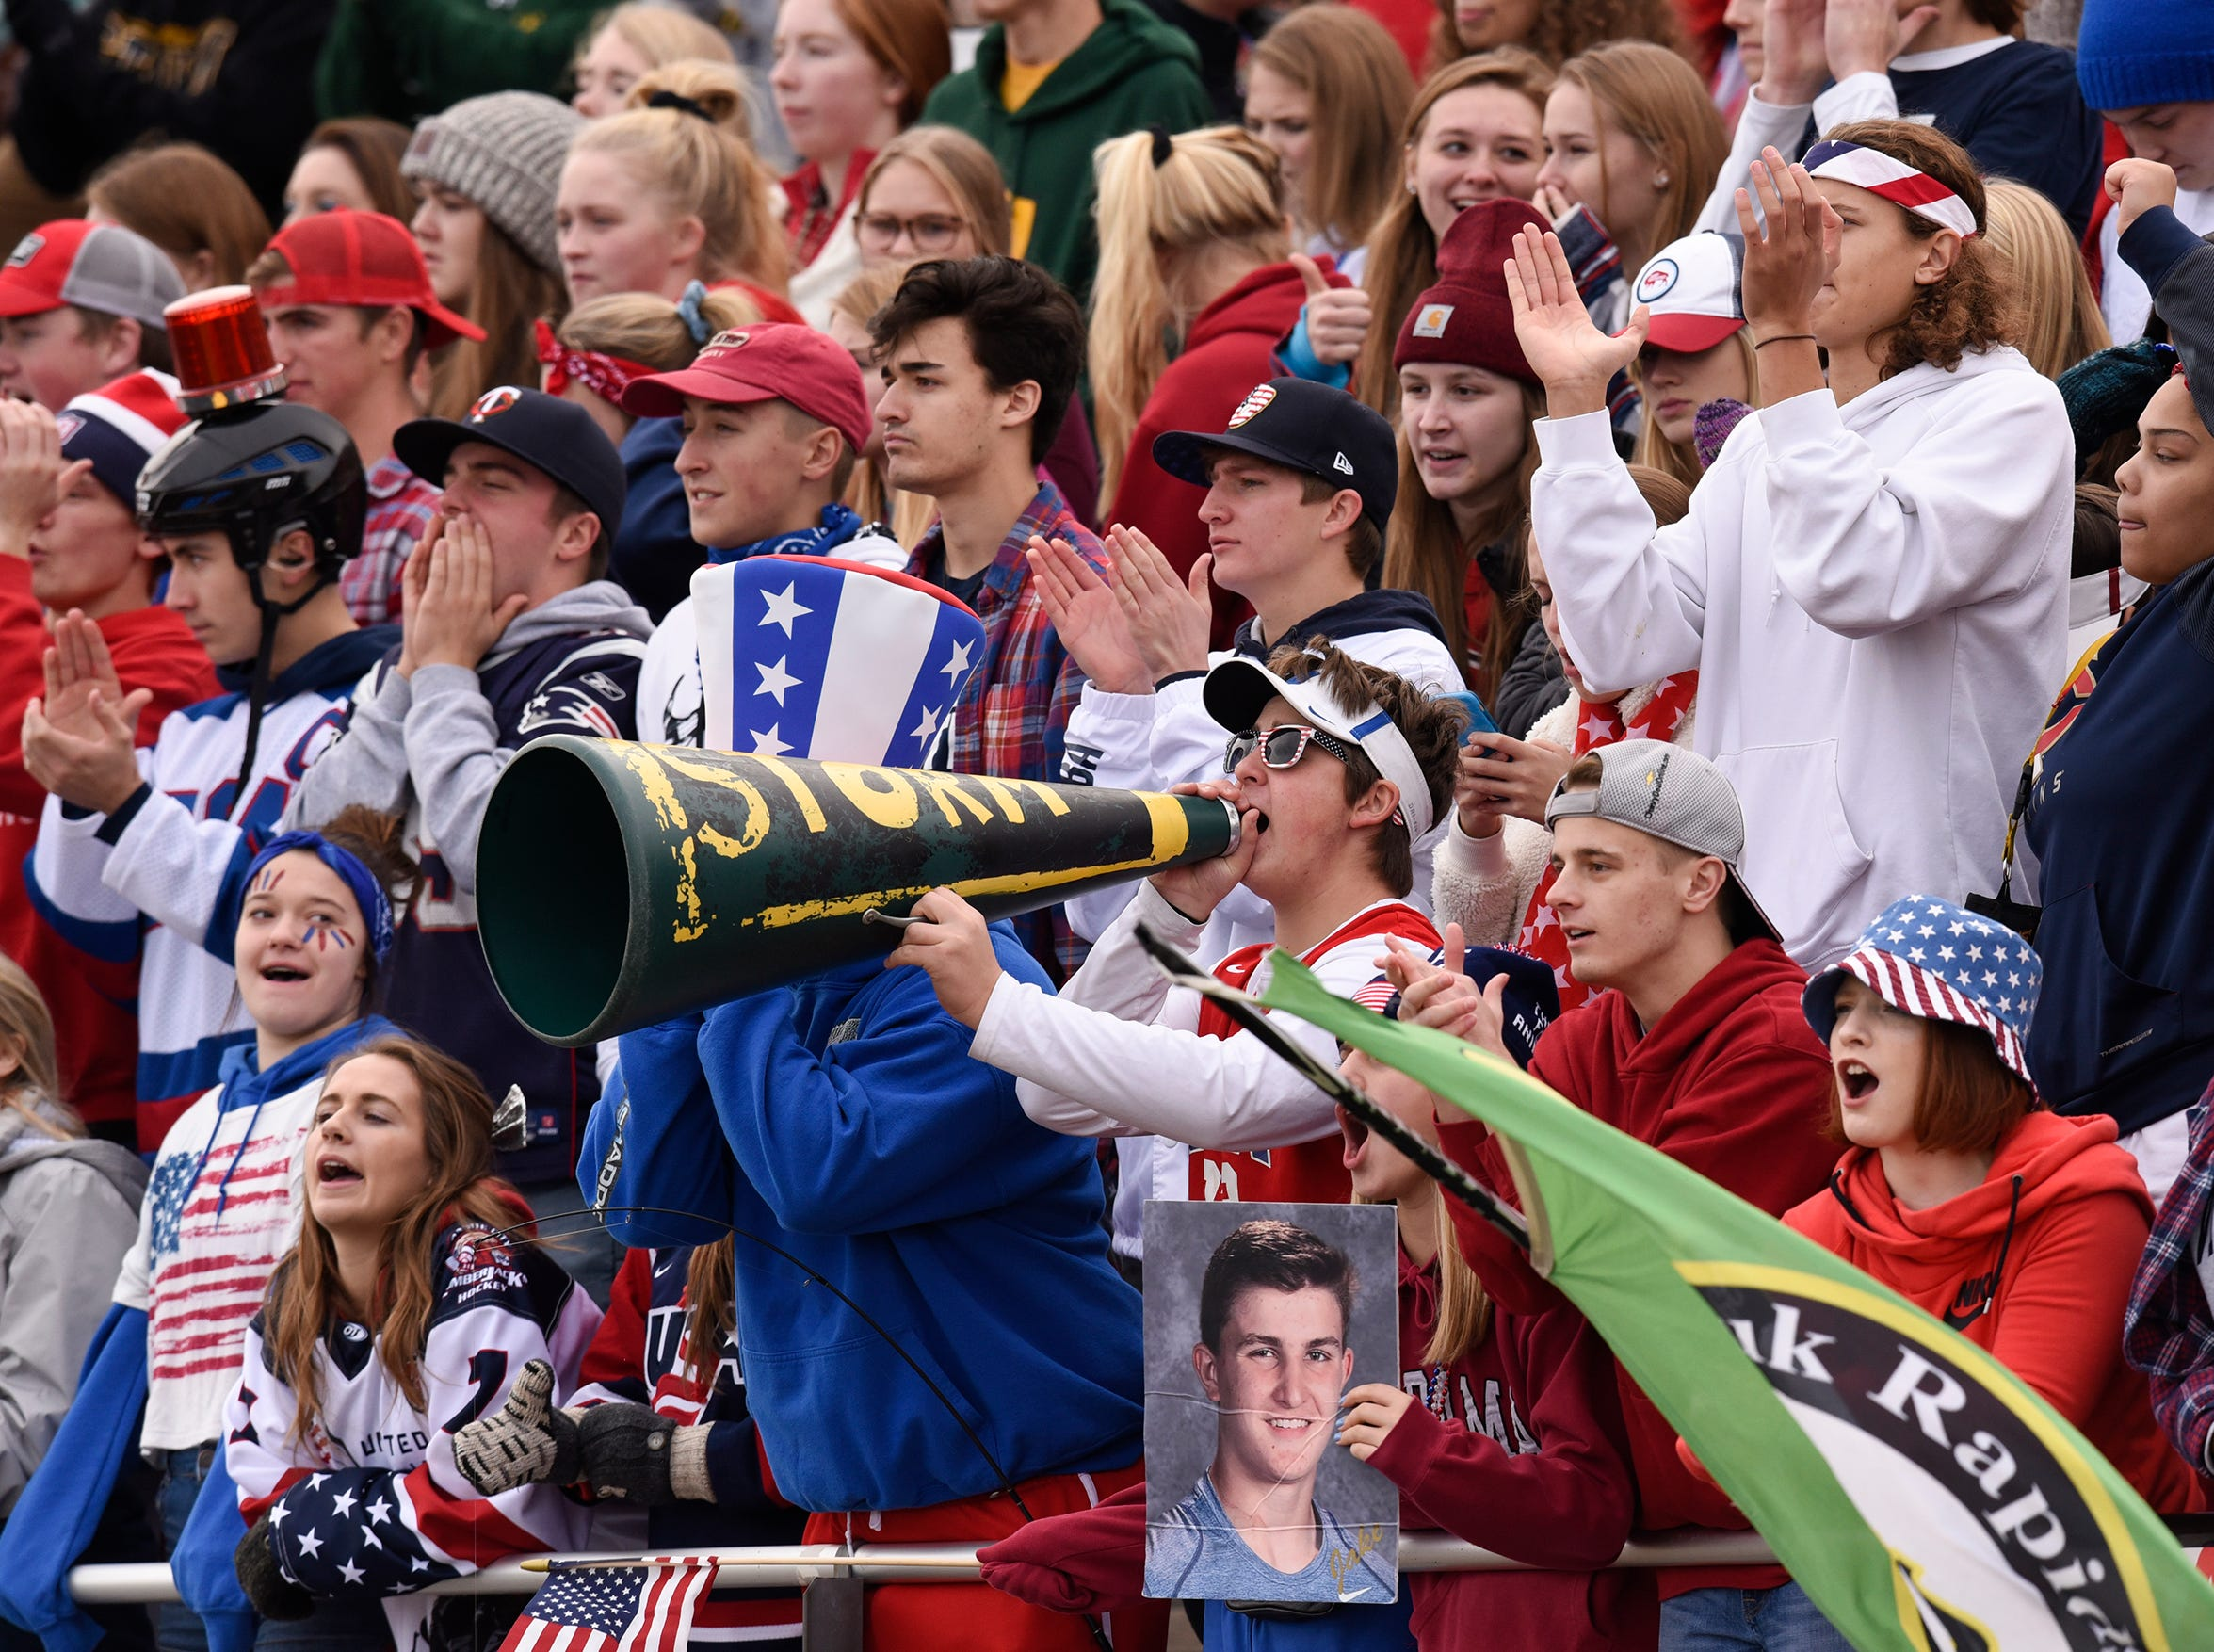 Fans cheer from the Sauk Rapids student section Saturday, Oct. 27, during the Section 6-5A semifinal game in Sauk Rapids.